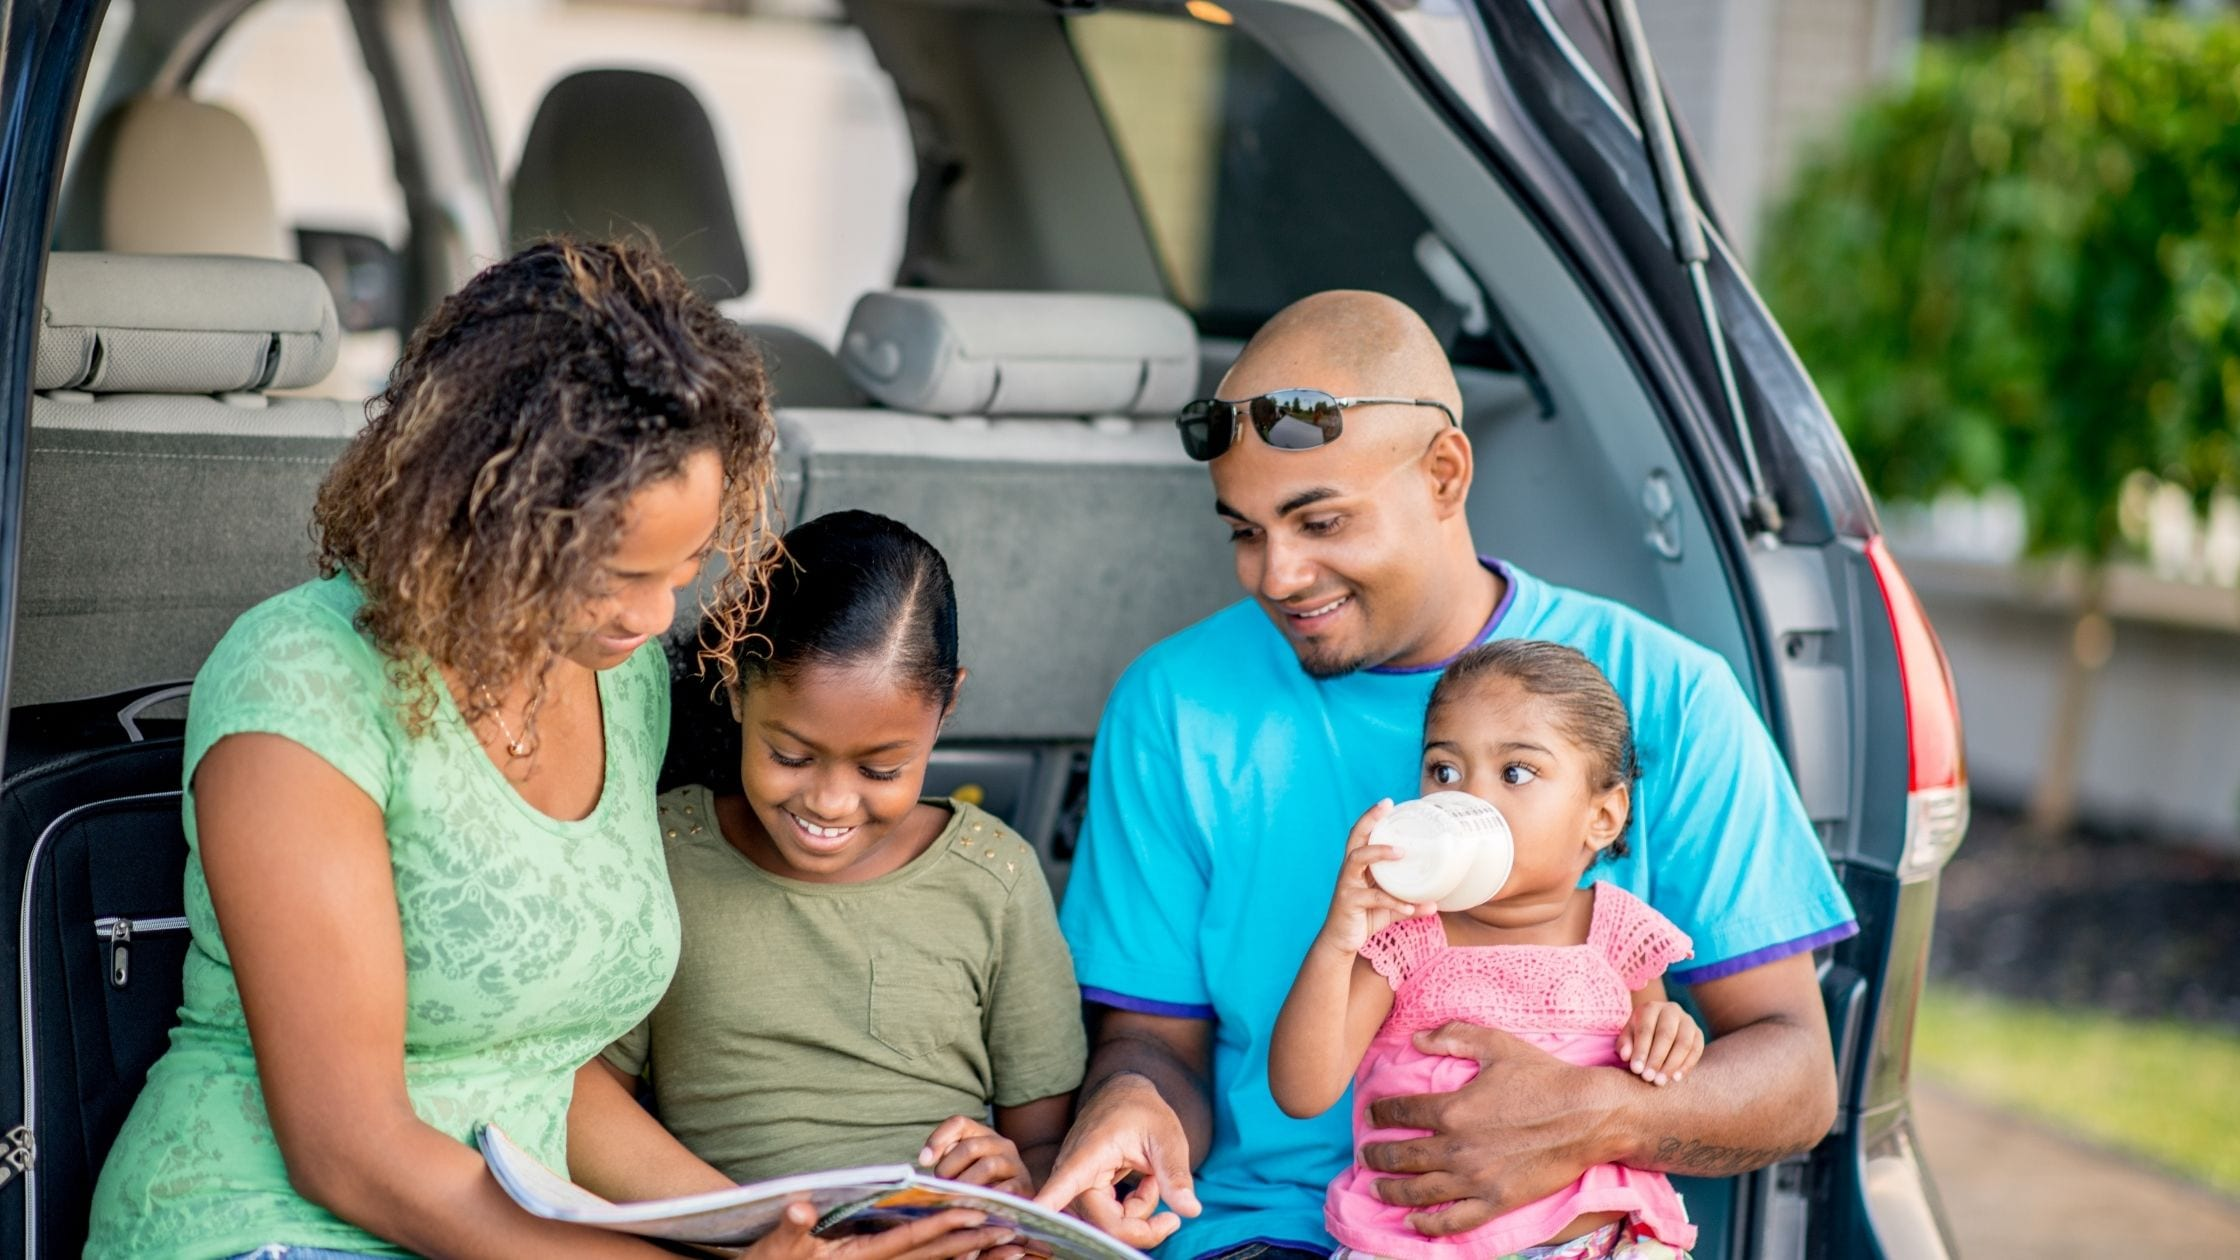 5 Parenting Tips for a Stress-Free Summer Road Trip